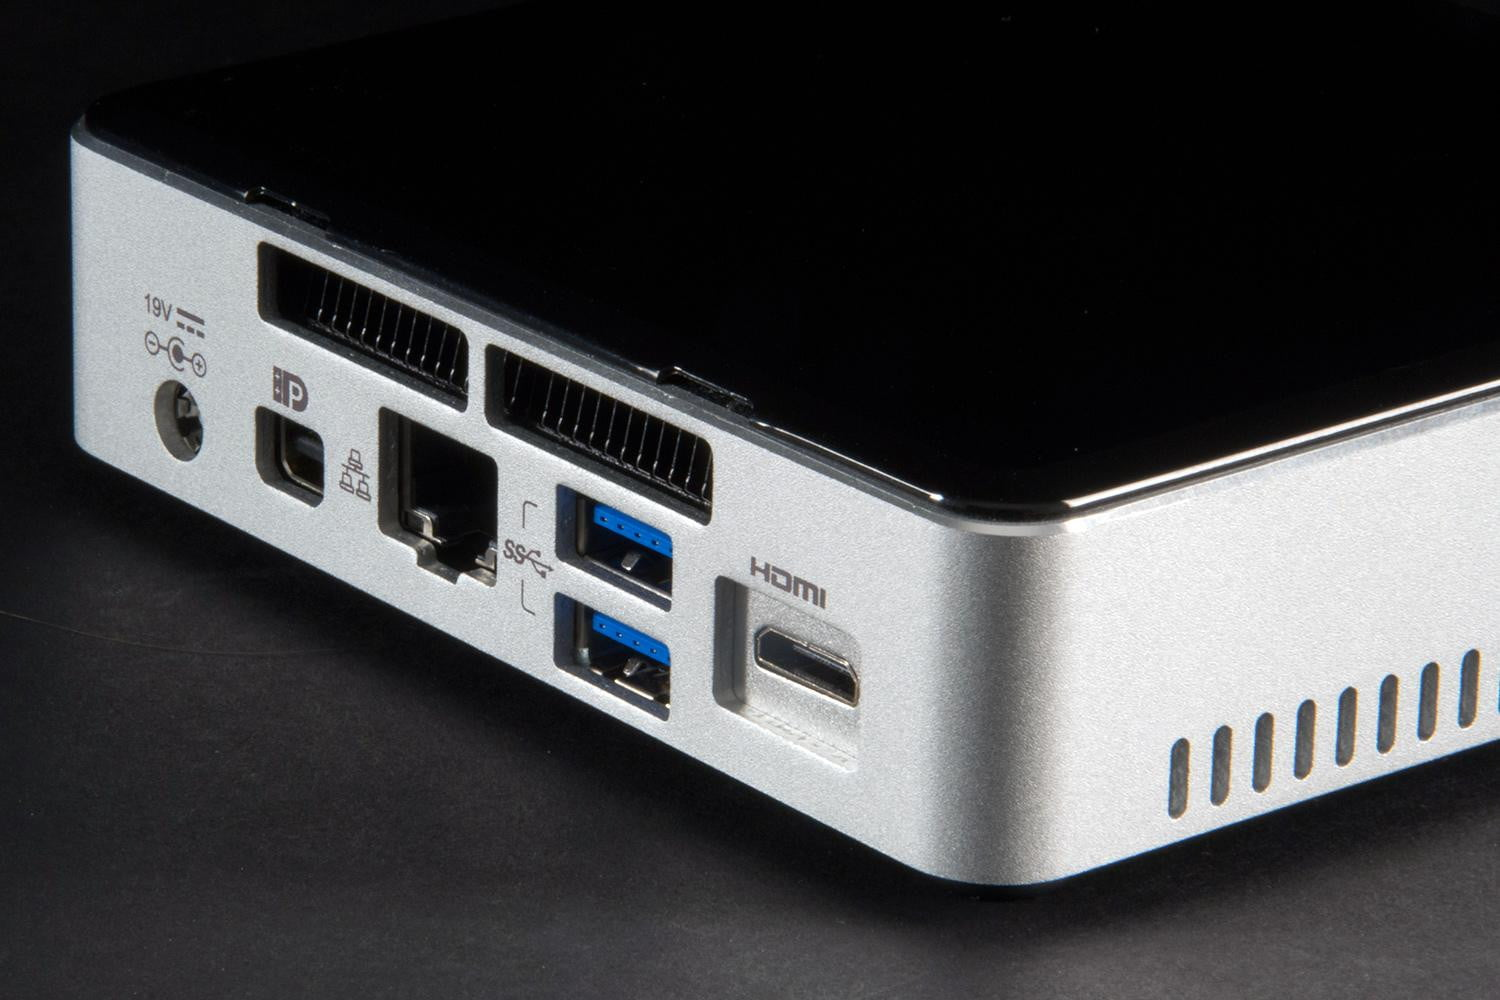 Intel NUC Core i5 (NUC5i5RYK) review | Digital Trends